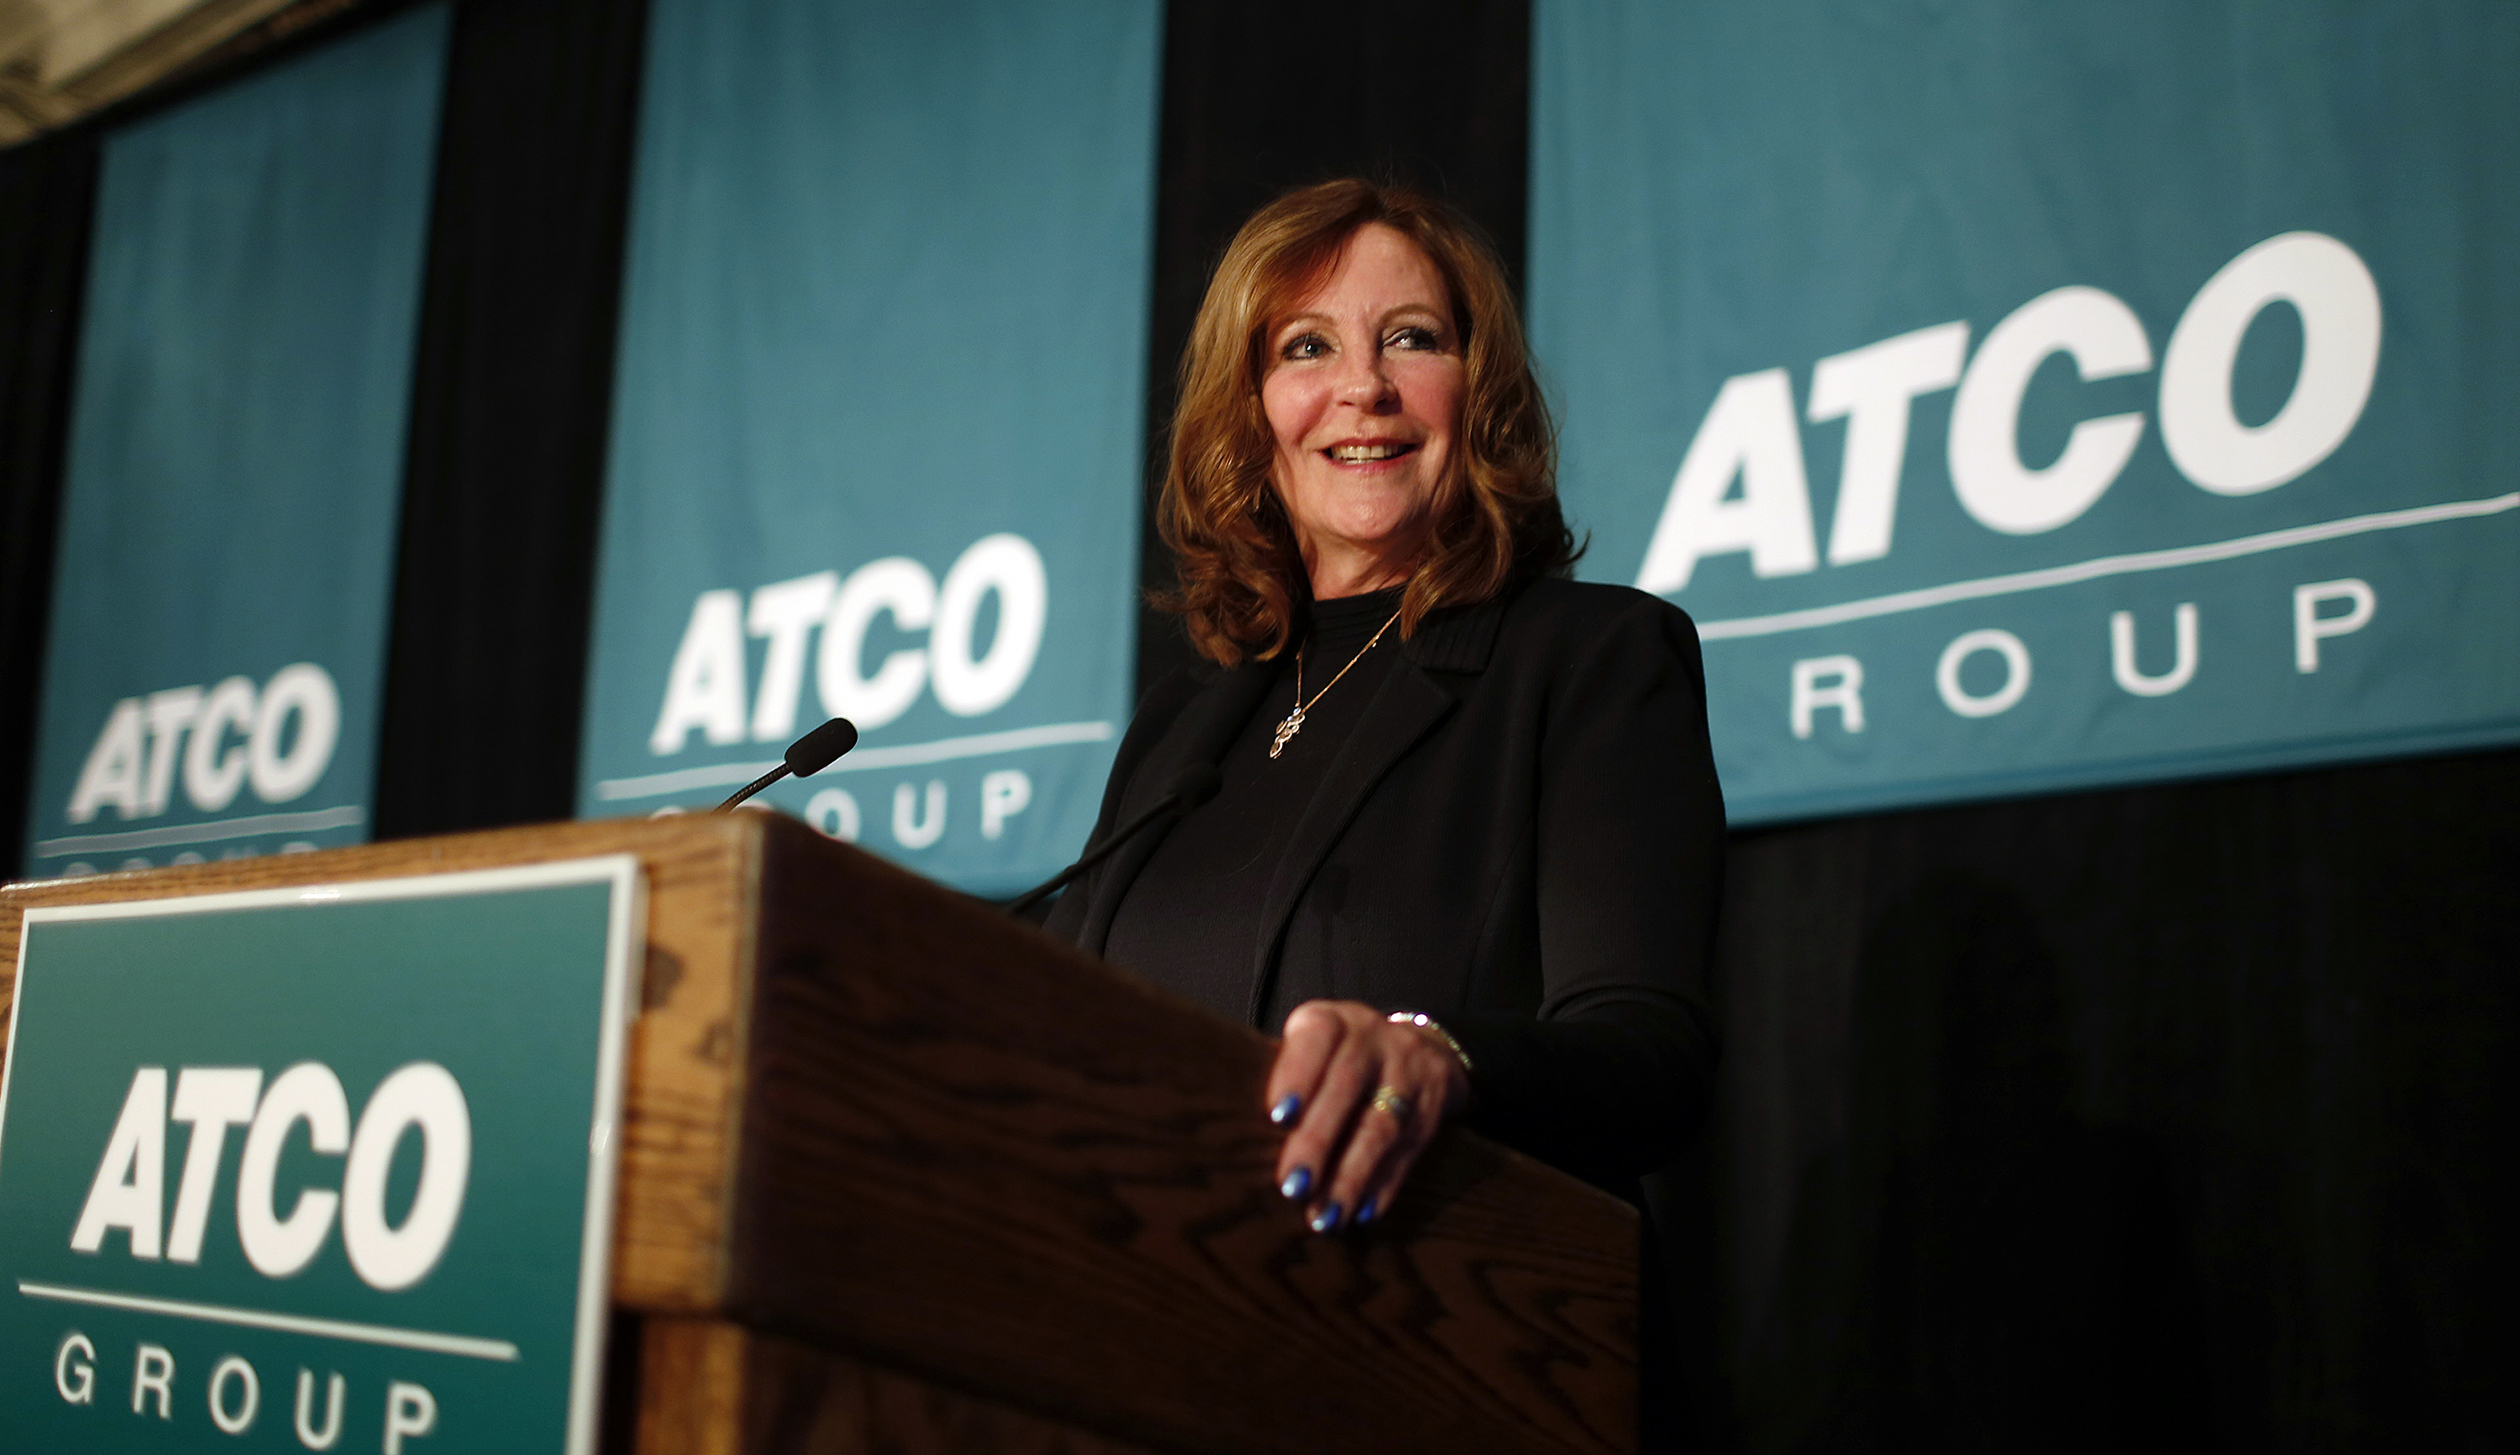 President and CEO of Atco Southern  addresses shareholders at the company's annual meeting in Calgary.